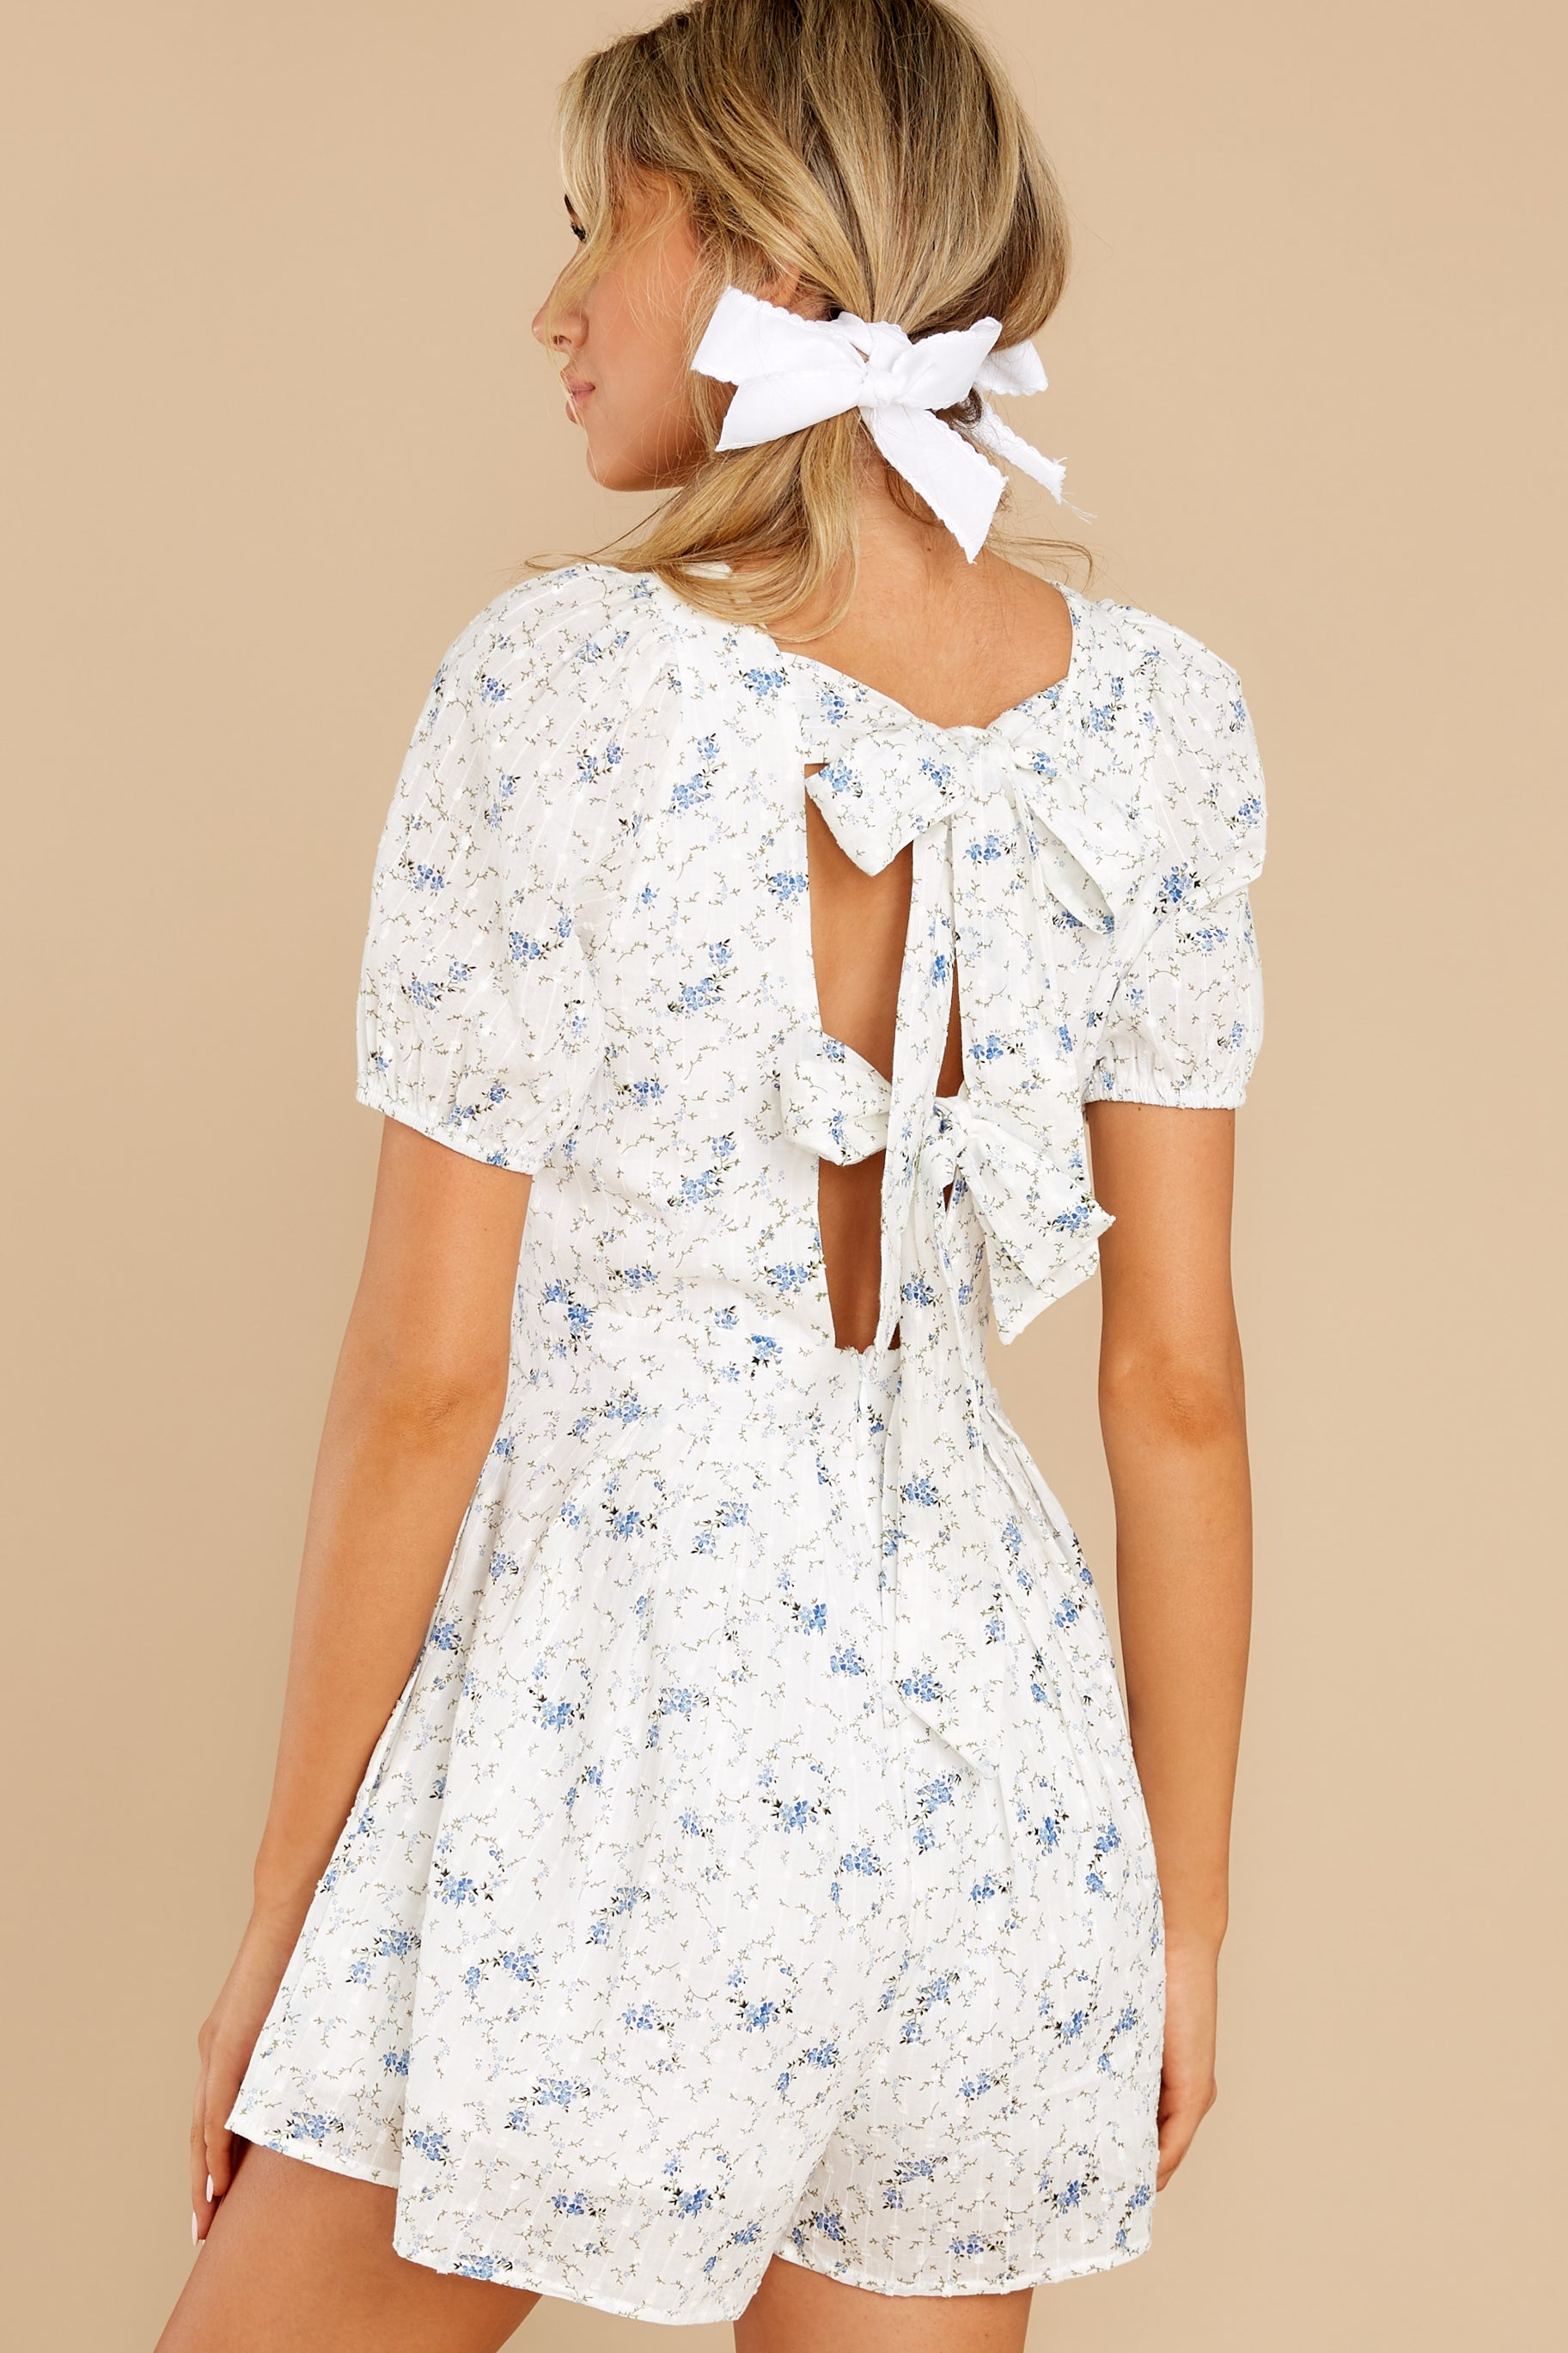 7 No Sweeter Love White Floral Print Romper at reddress.com